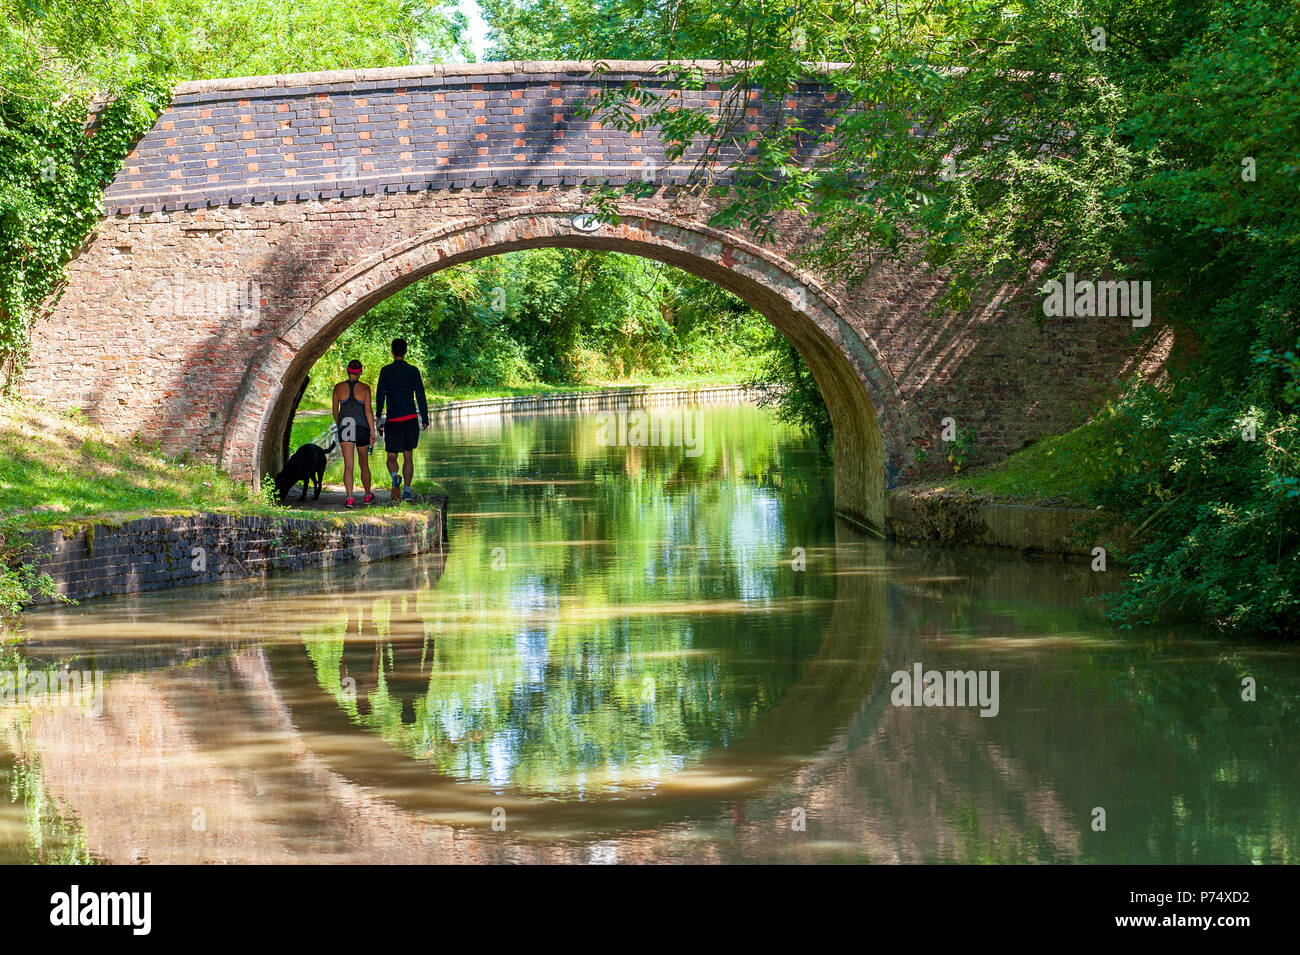 two walkers and their dog walk the towpath  under a bridge alongside the Grand Union canal close to Crick, England in summertime - Stock Image